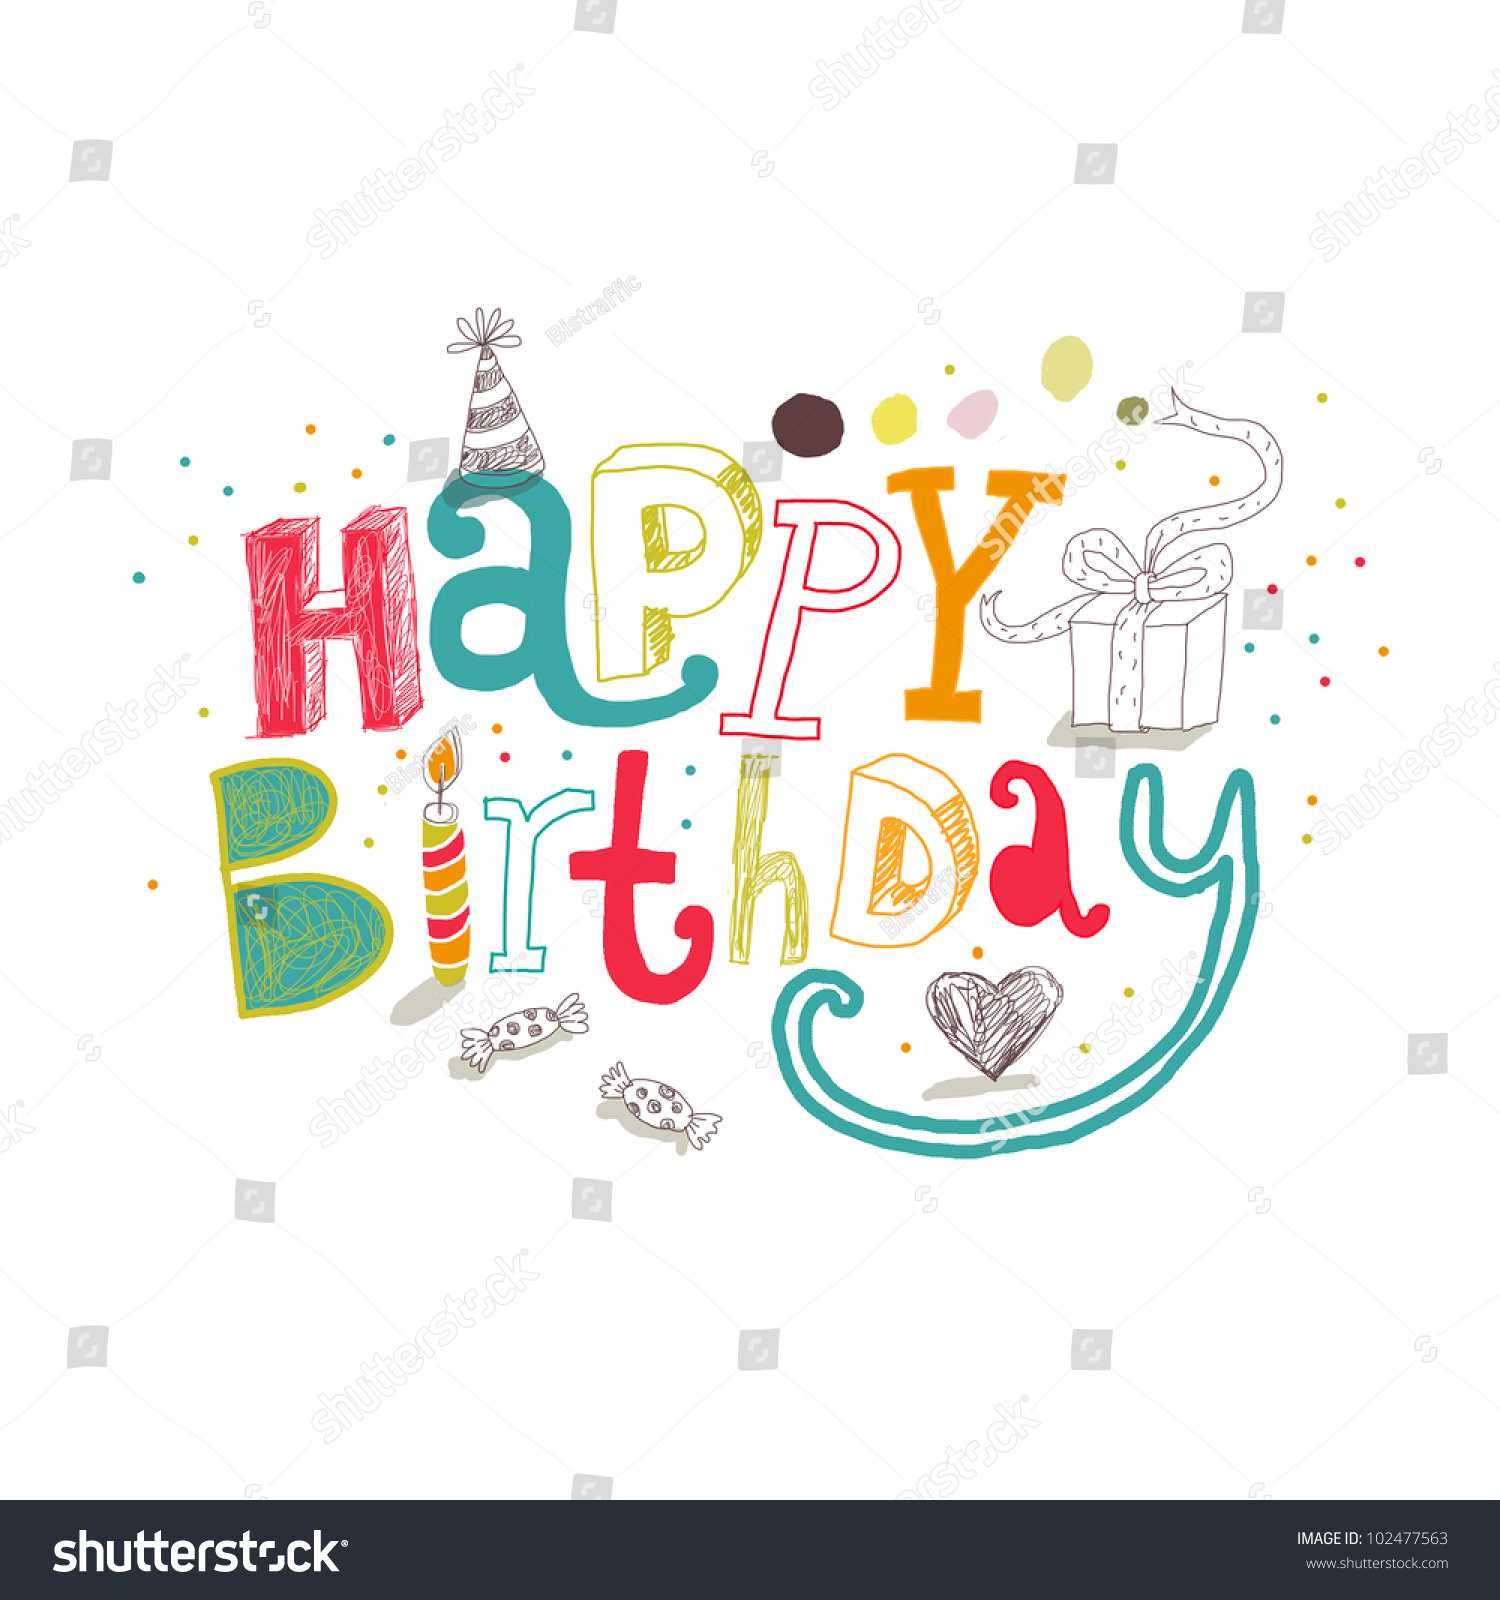 Happy birthday greetings vector drawing stock vector 102477563 happy birthday greetings vector drawing kristyandbryce Image collections